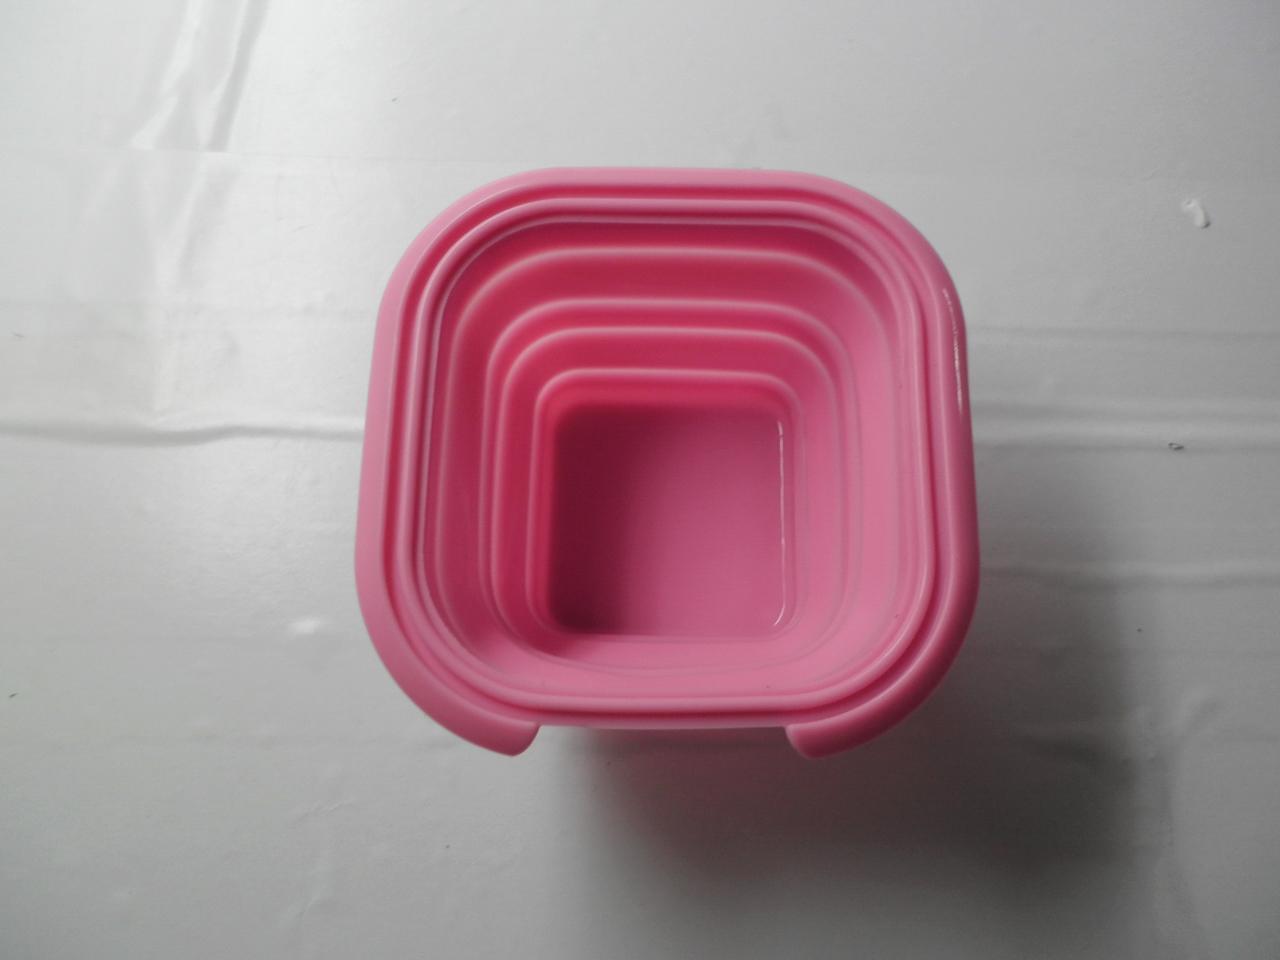 http://www.refinehksilicone.cn/data/images/product/20180418101224_918.jpg